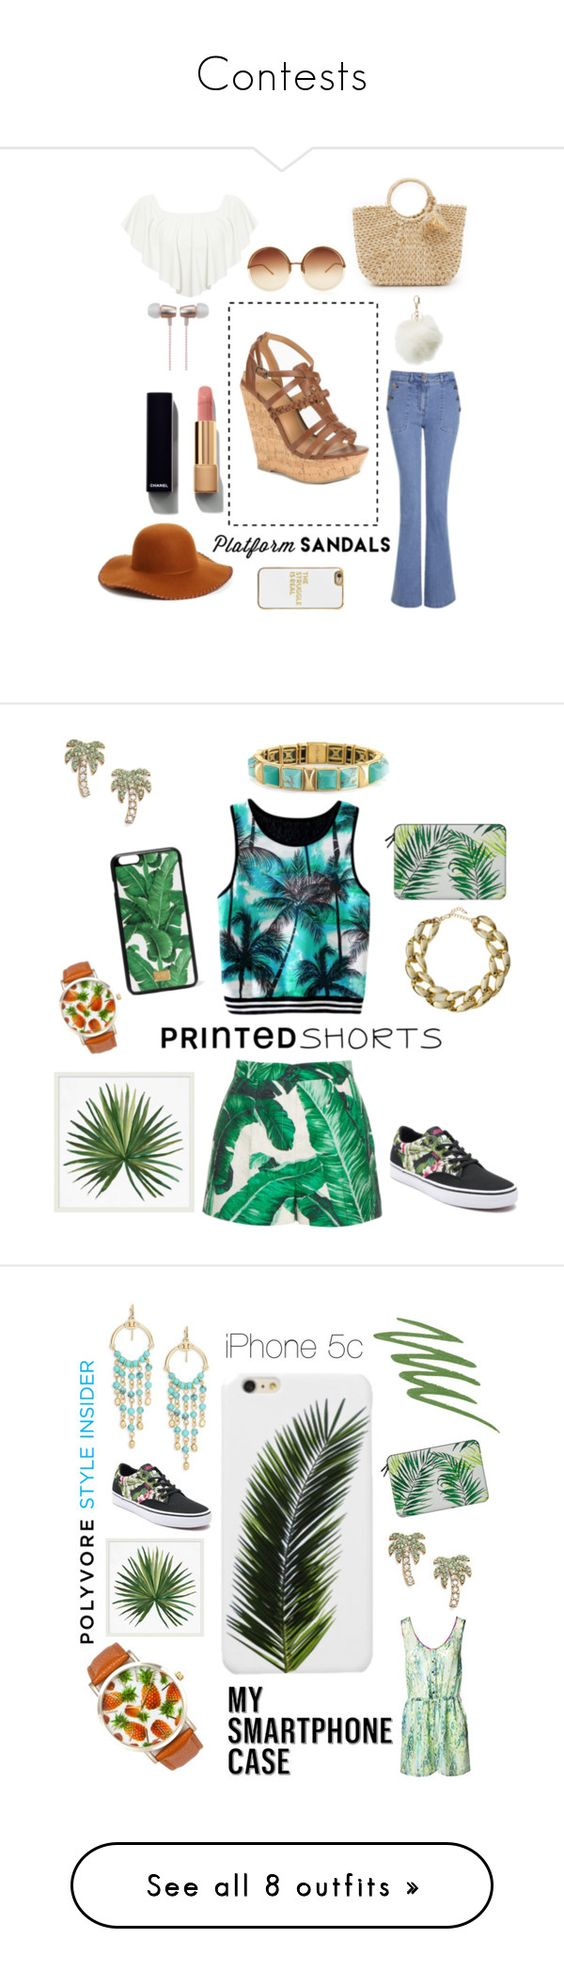 """""""Contests"""" by fashionismyybae ❤ liked on Polyvore featuring Phase 3, Delicious, WearAll, Laura Ashley, Hat Attack, Linda Farrow, Chanel, BaubleBar, Cynthia Rowley and Charlotte Russe"""